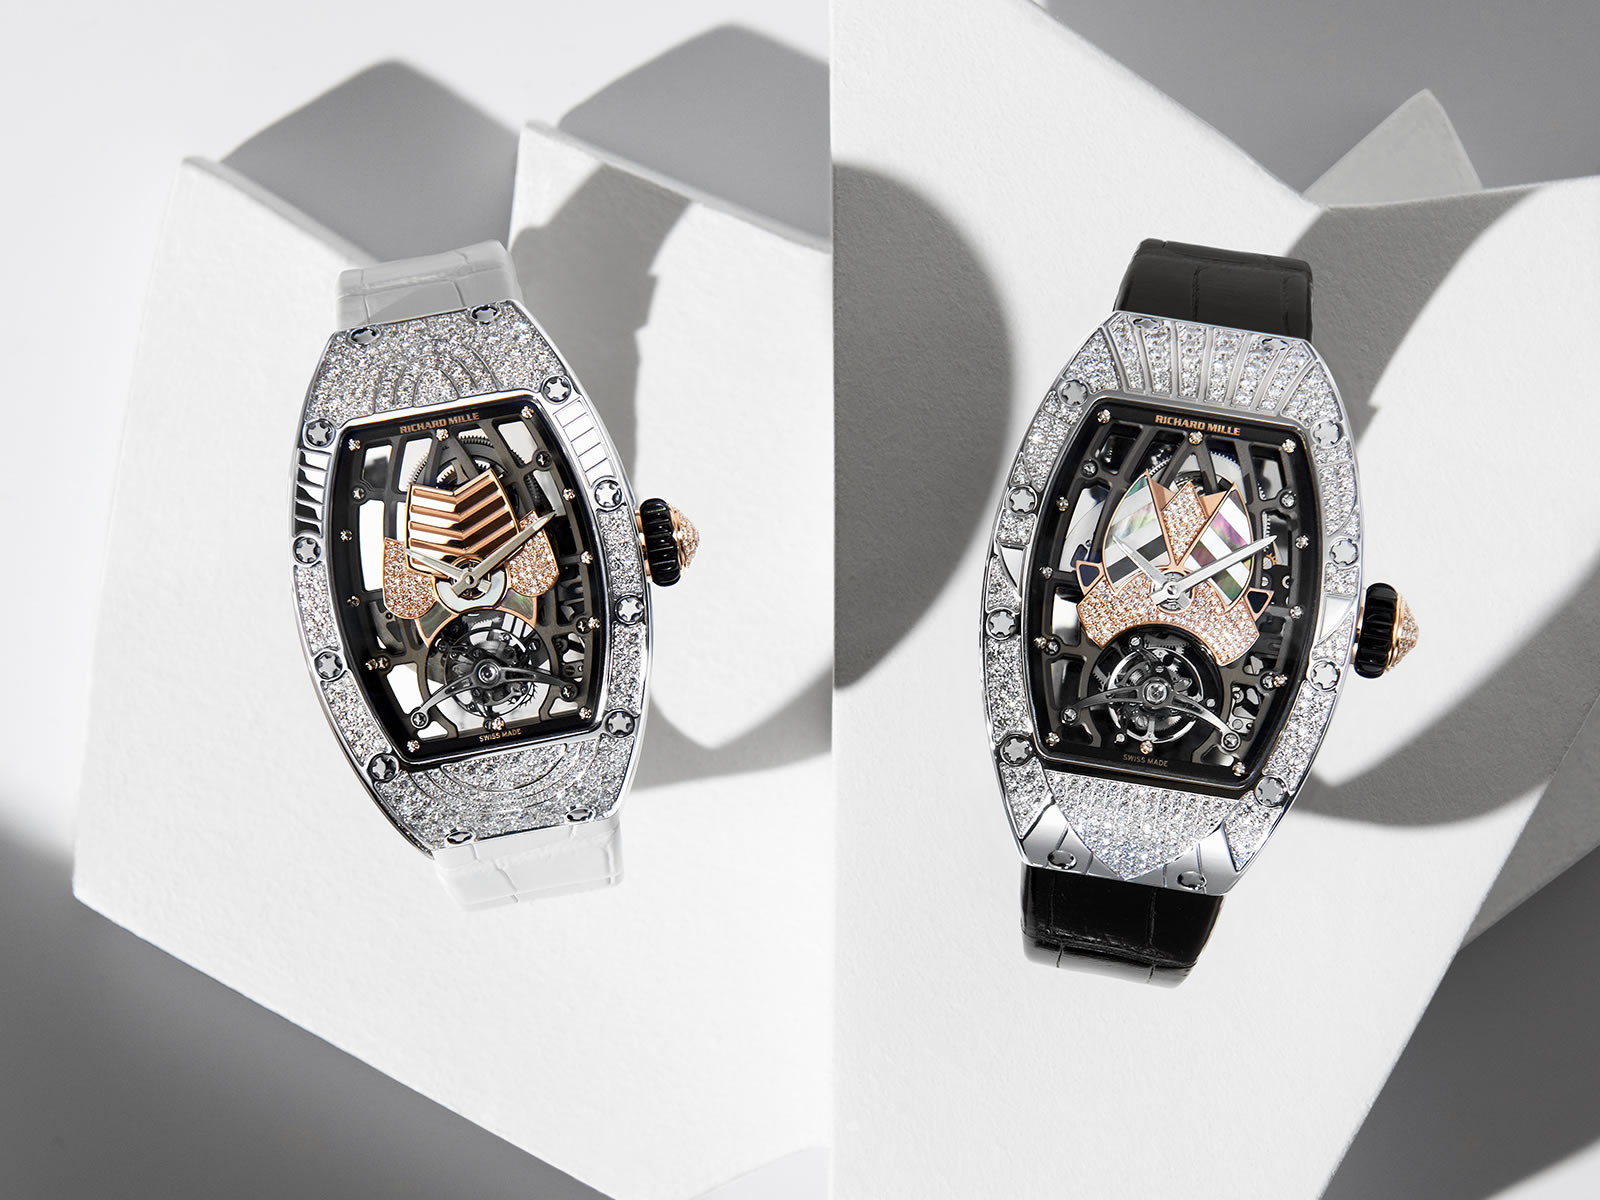 richard-mille-rm-71-01-automatic-tourbillon-talisman-8-.jpg